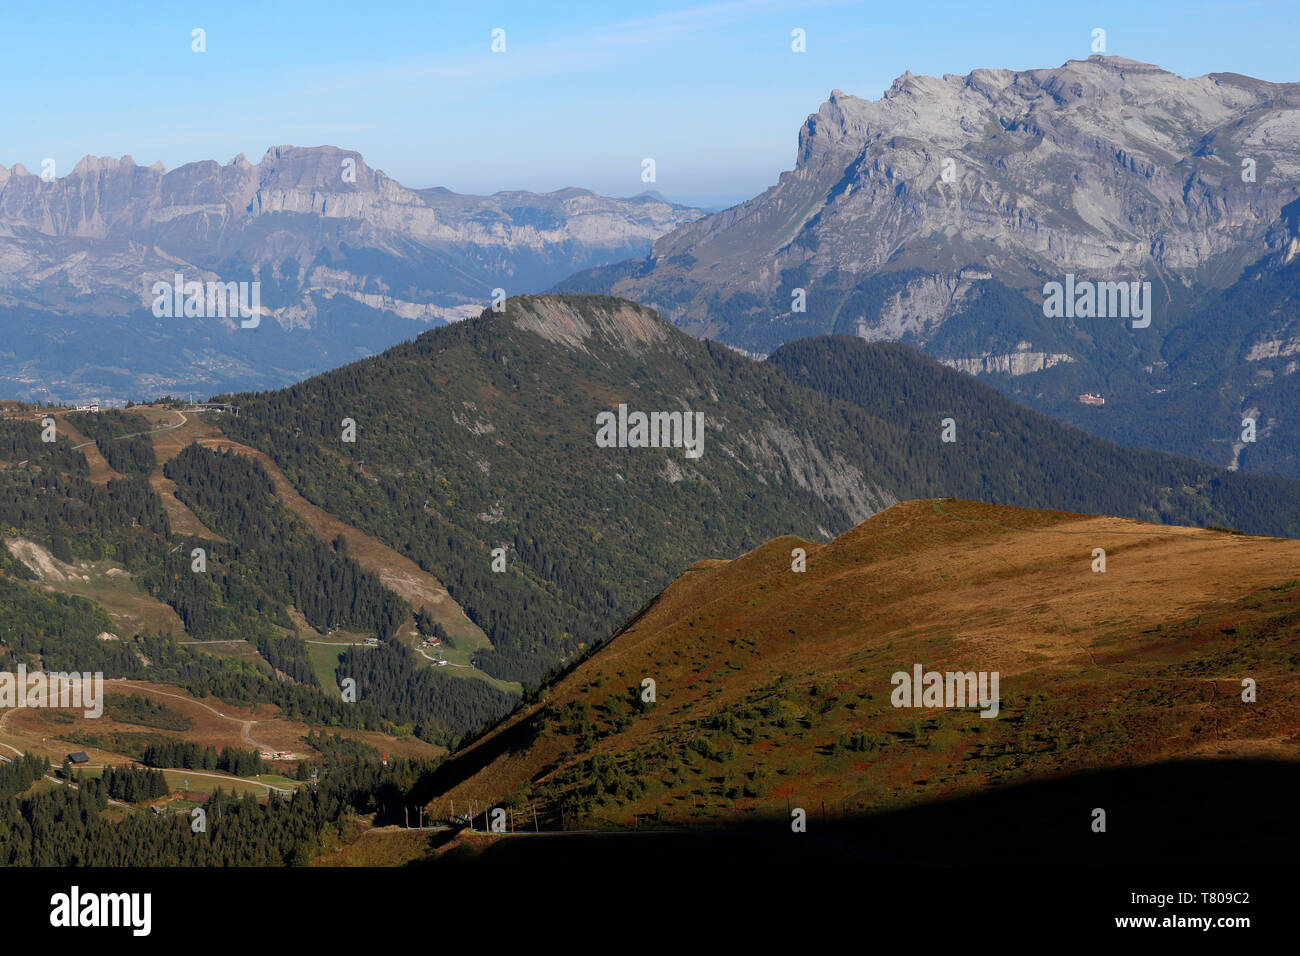 Landscape of the French Alps in summer, Aravis and Fiz